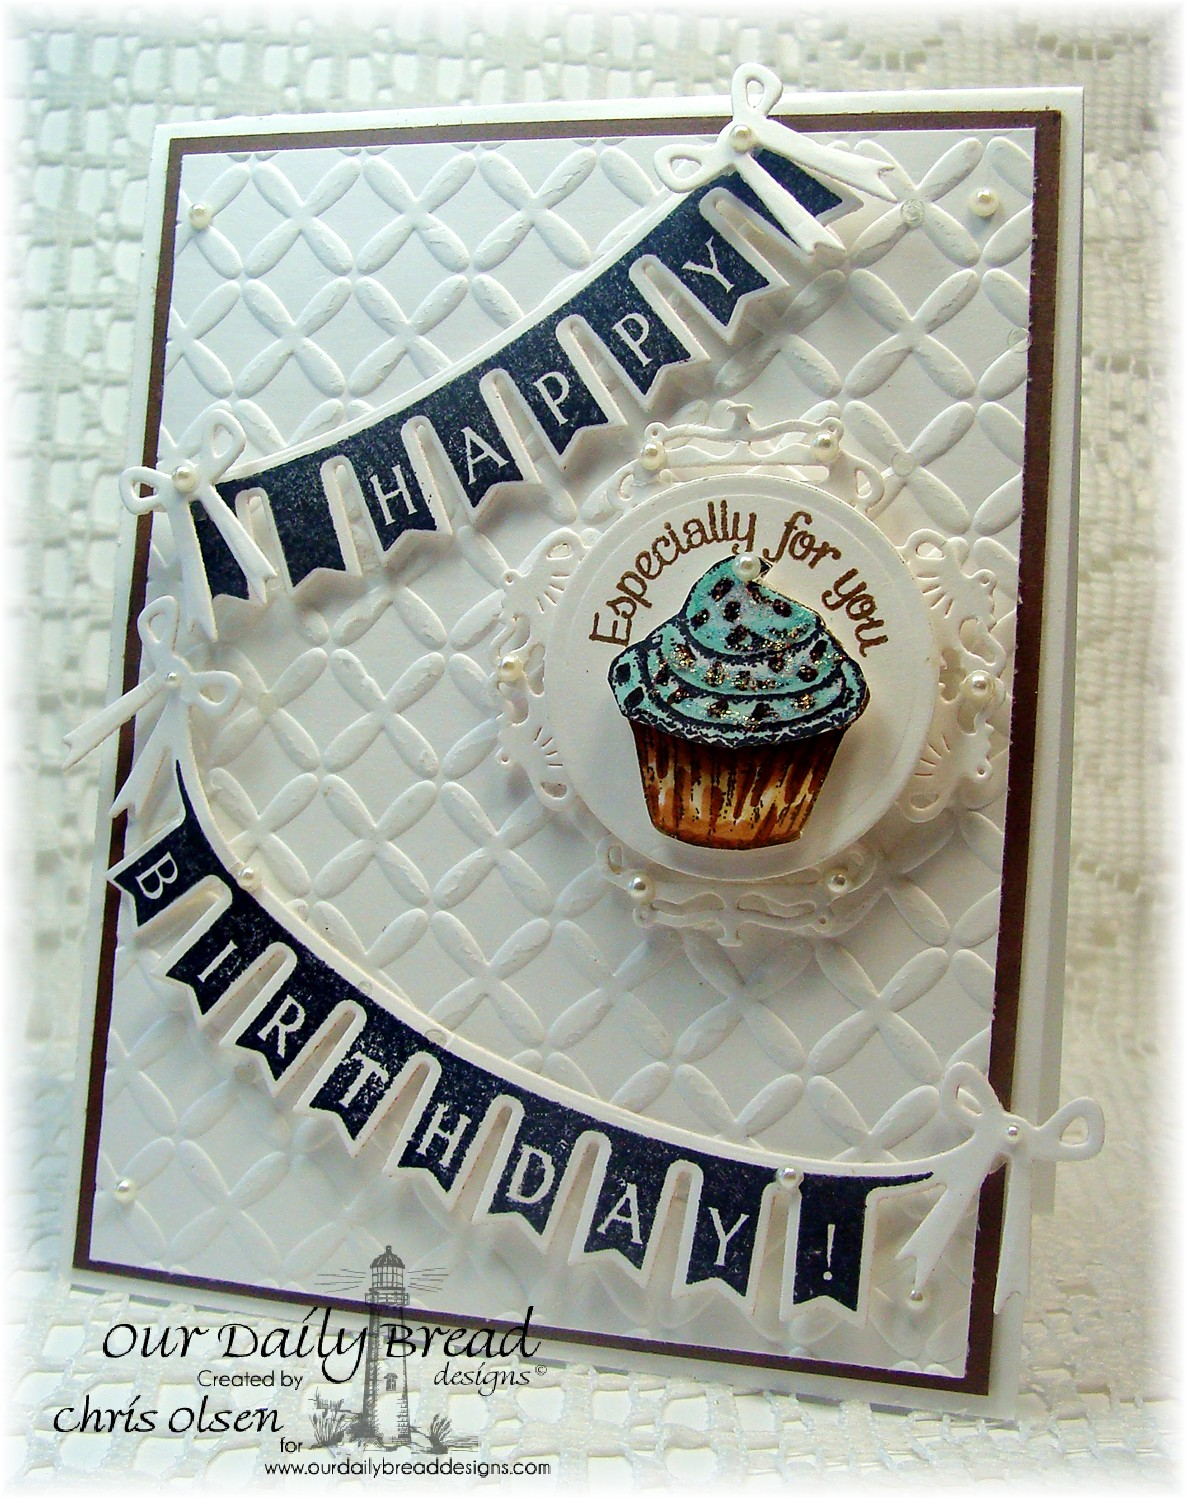 Stamps - Our Daily Bread Designs Pennant Swag 2, Baking Gift Tags, ODBD Custom Pennant Swag Die, ODBD Custom Recipe Card and Tags Dies